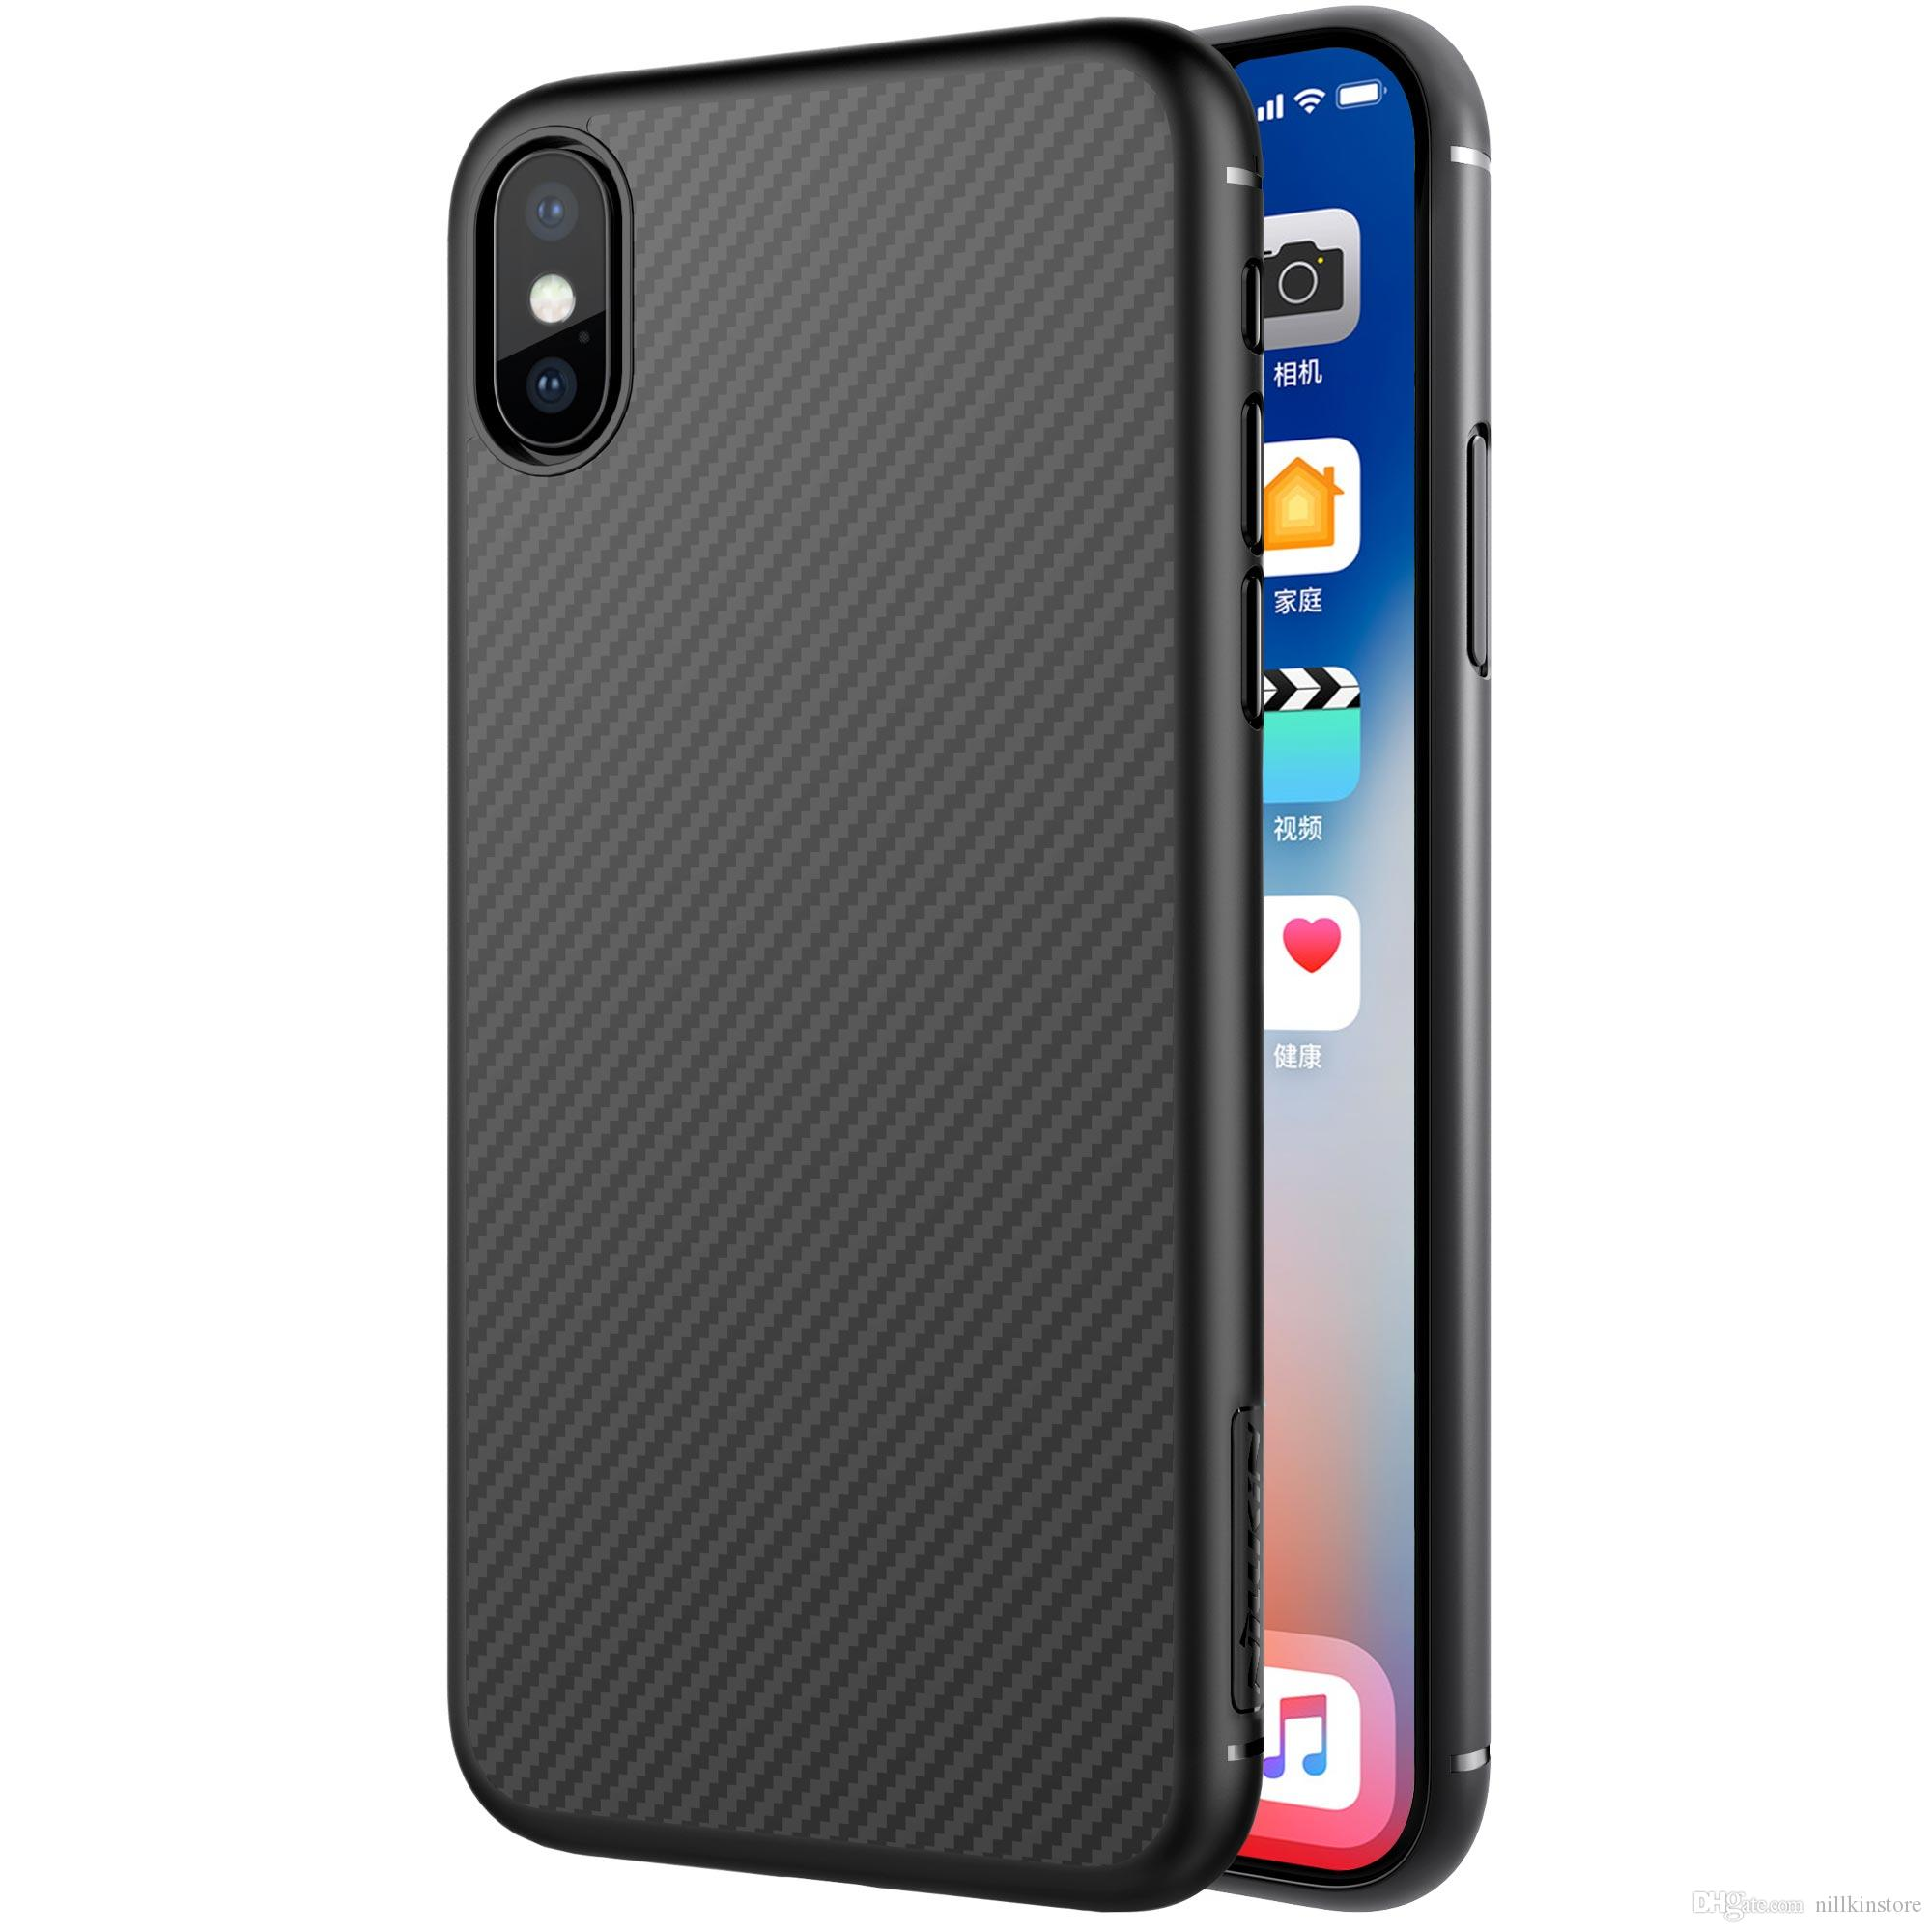 Nillkin Synthetic Fiber For Iphone X Case Carbon Pp Plastic Silikon Soft Samsung Galaxy S8 Plus Nature Ultrathin Original Back Cover Ultra Thin Slim Luxury 58